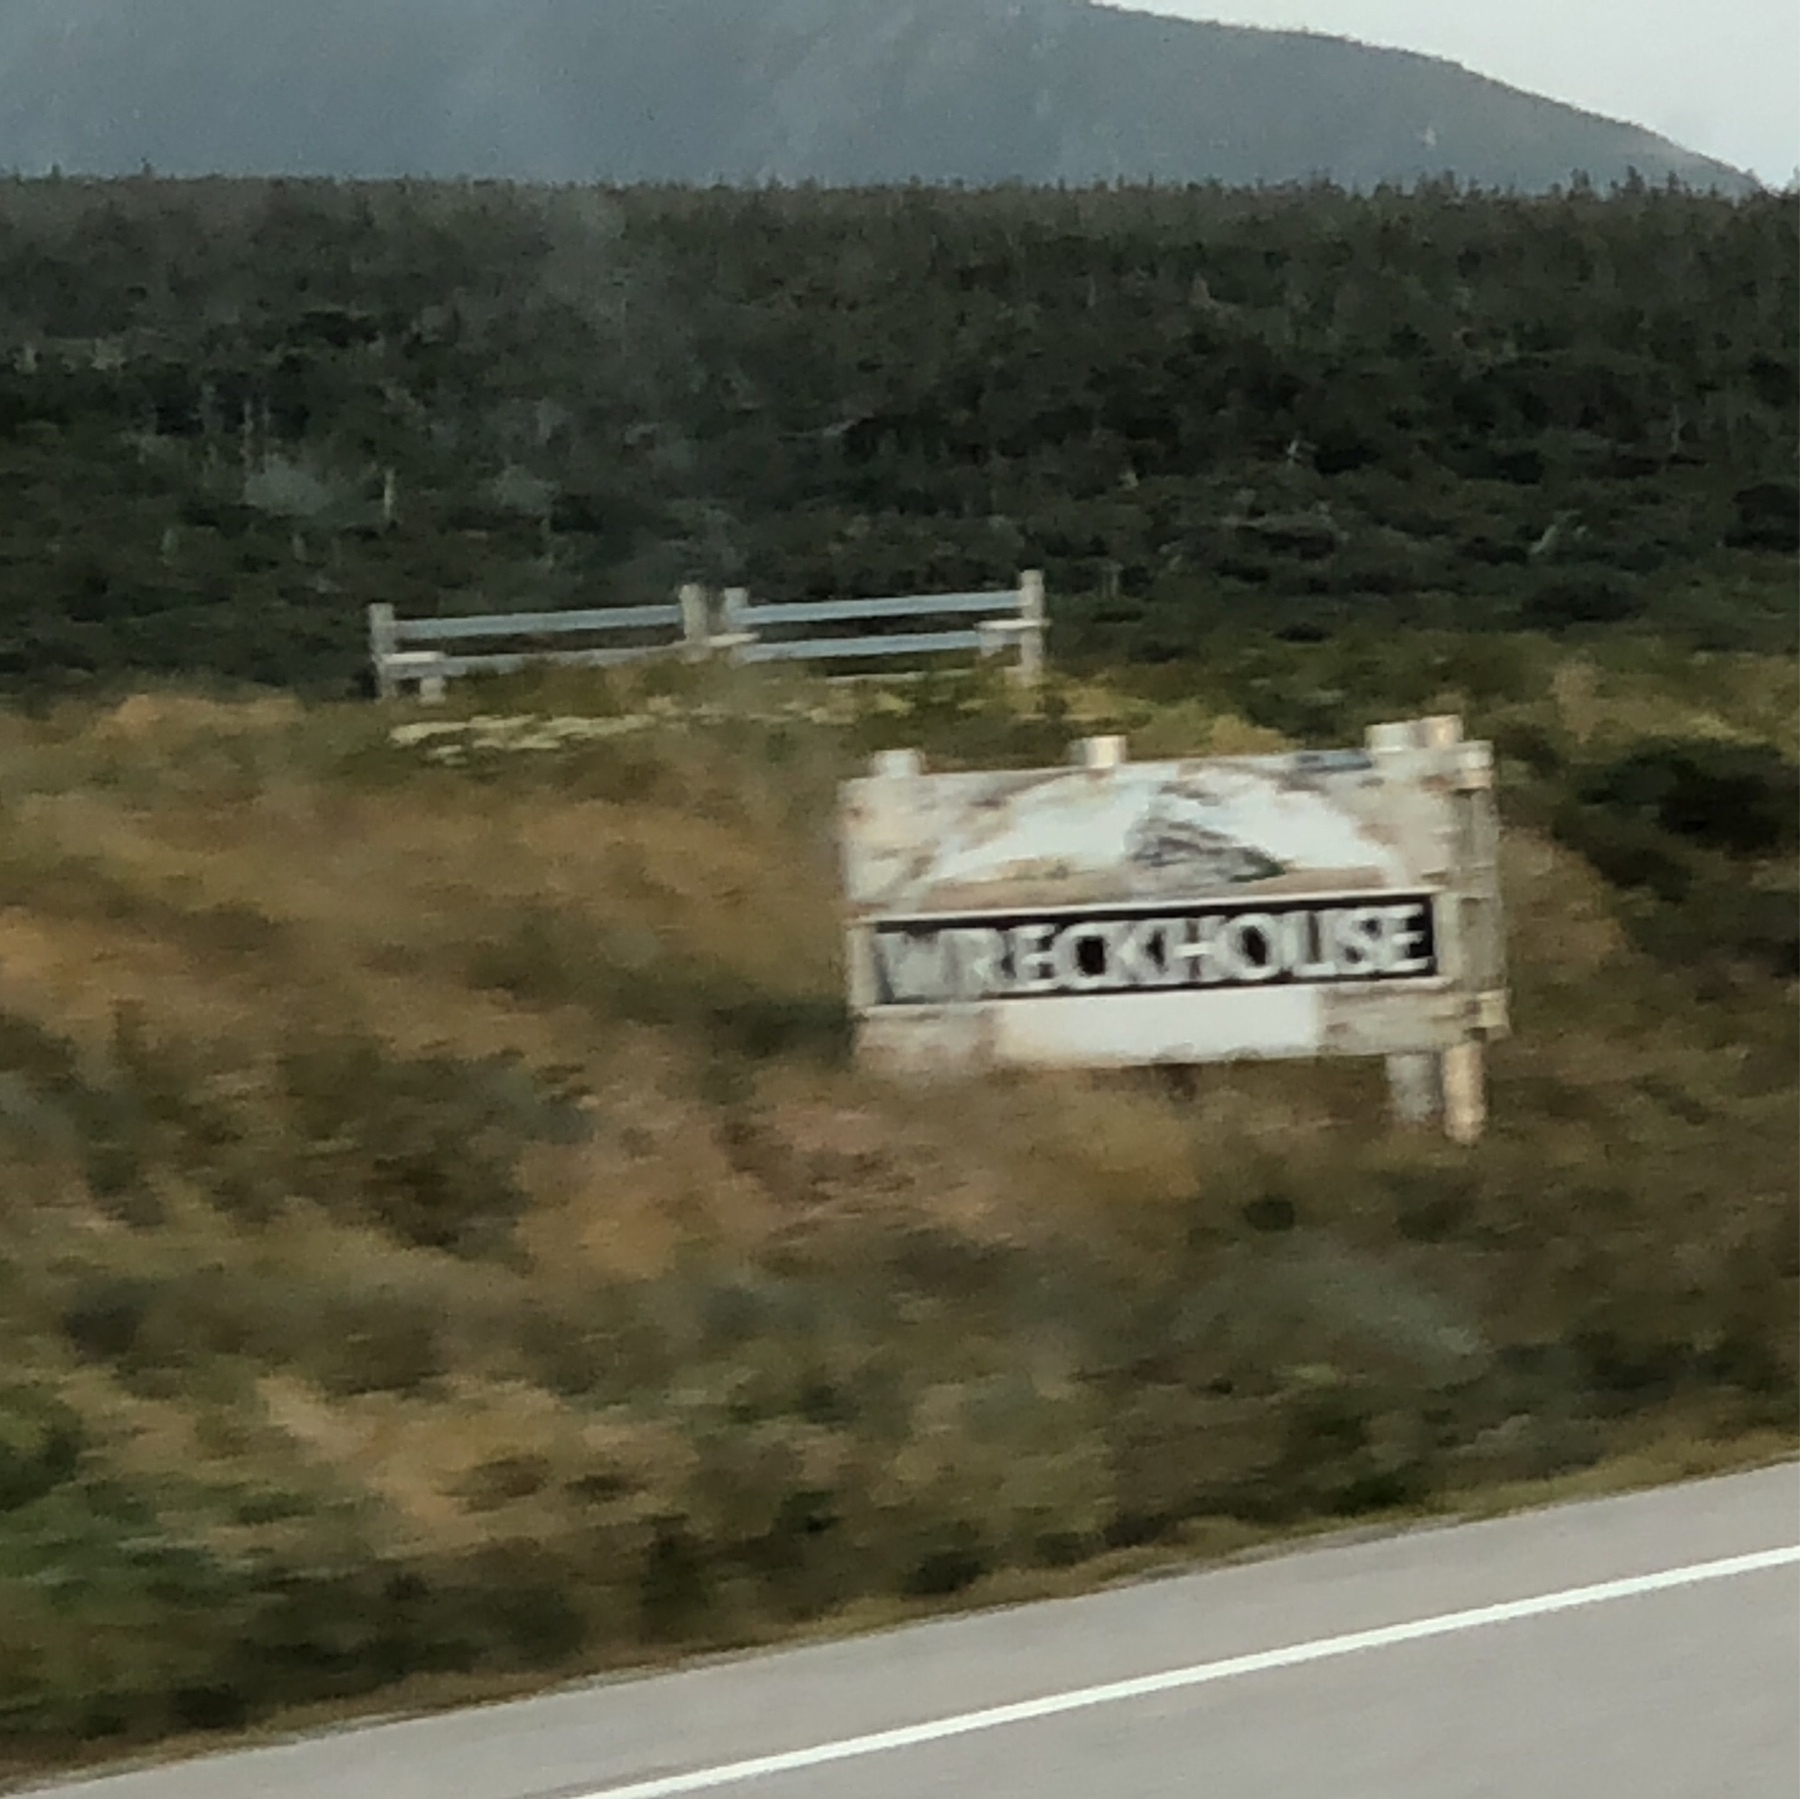 wreckhouse sign in front of mountains